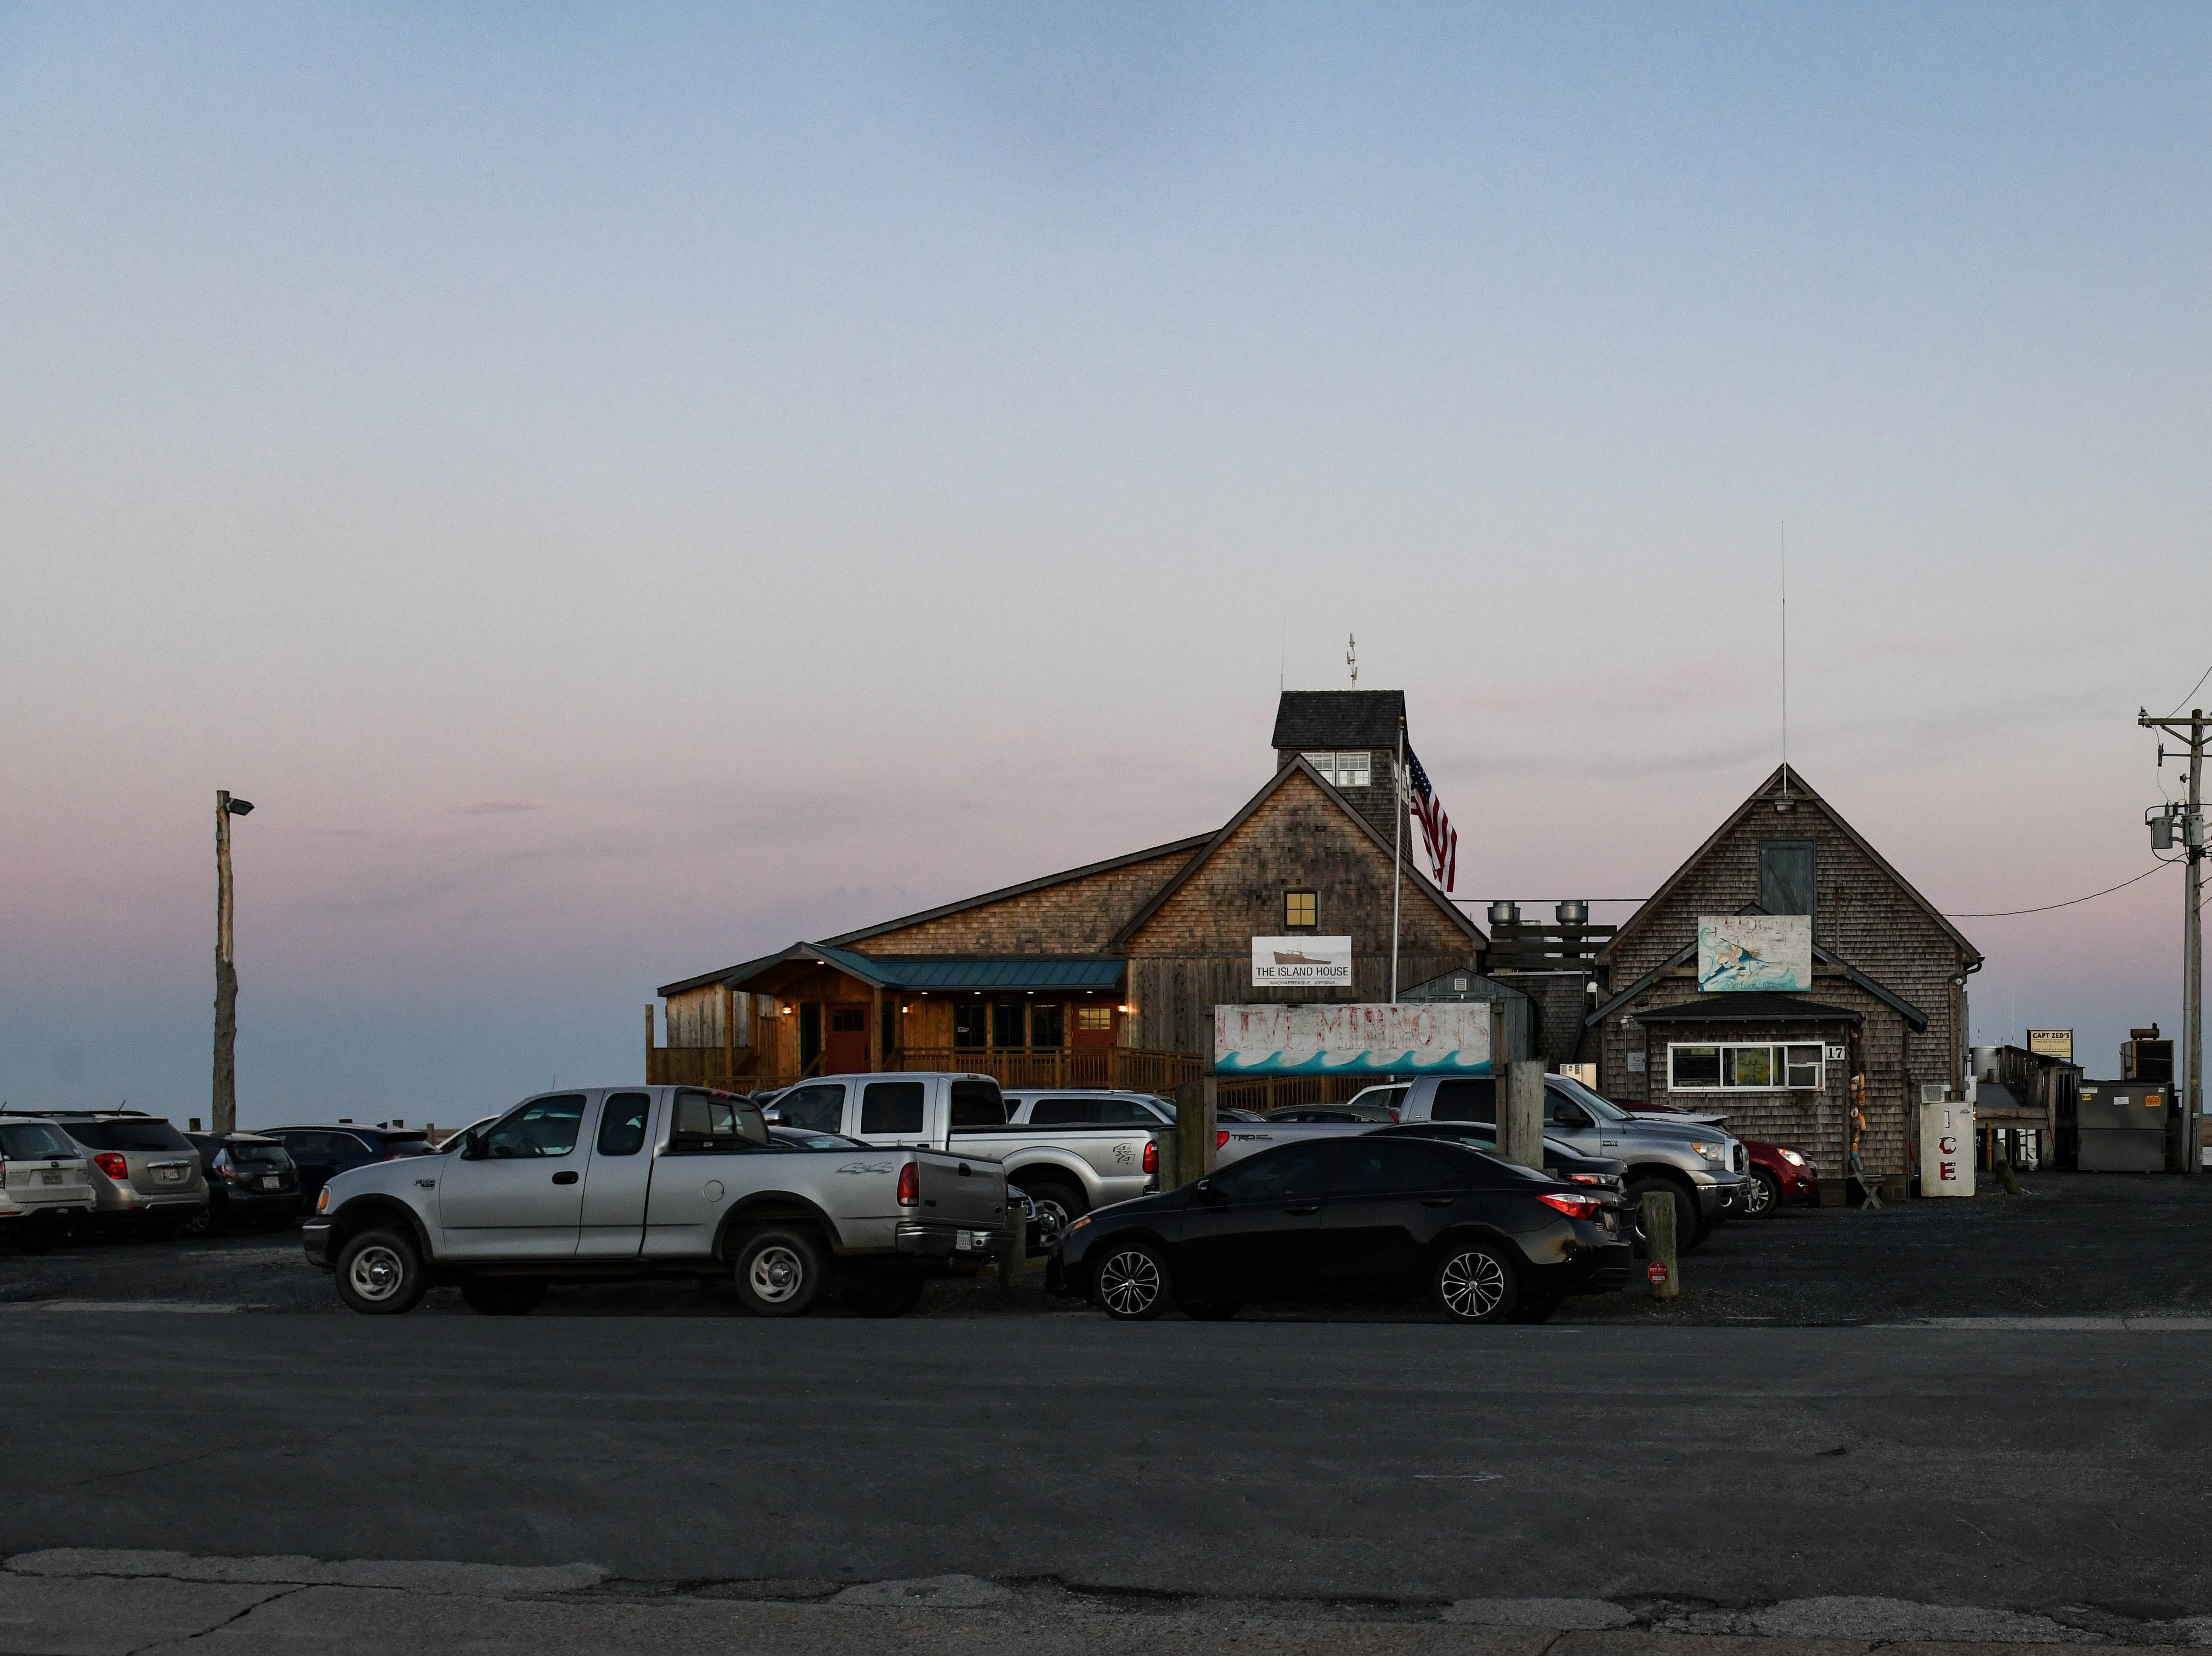 Cars crowd outside the Island House Restaurant in Wachapreague, Virginia for a community discussion on flooding and  sea level rise led by the Nature Conservancy on Monday, March 4, 2019.